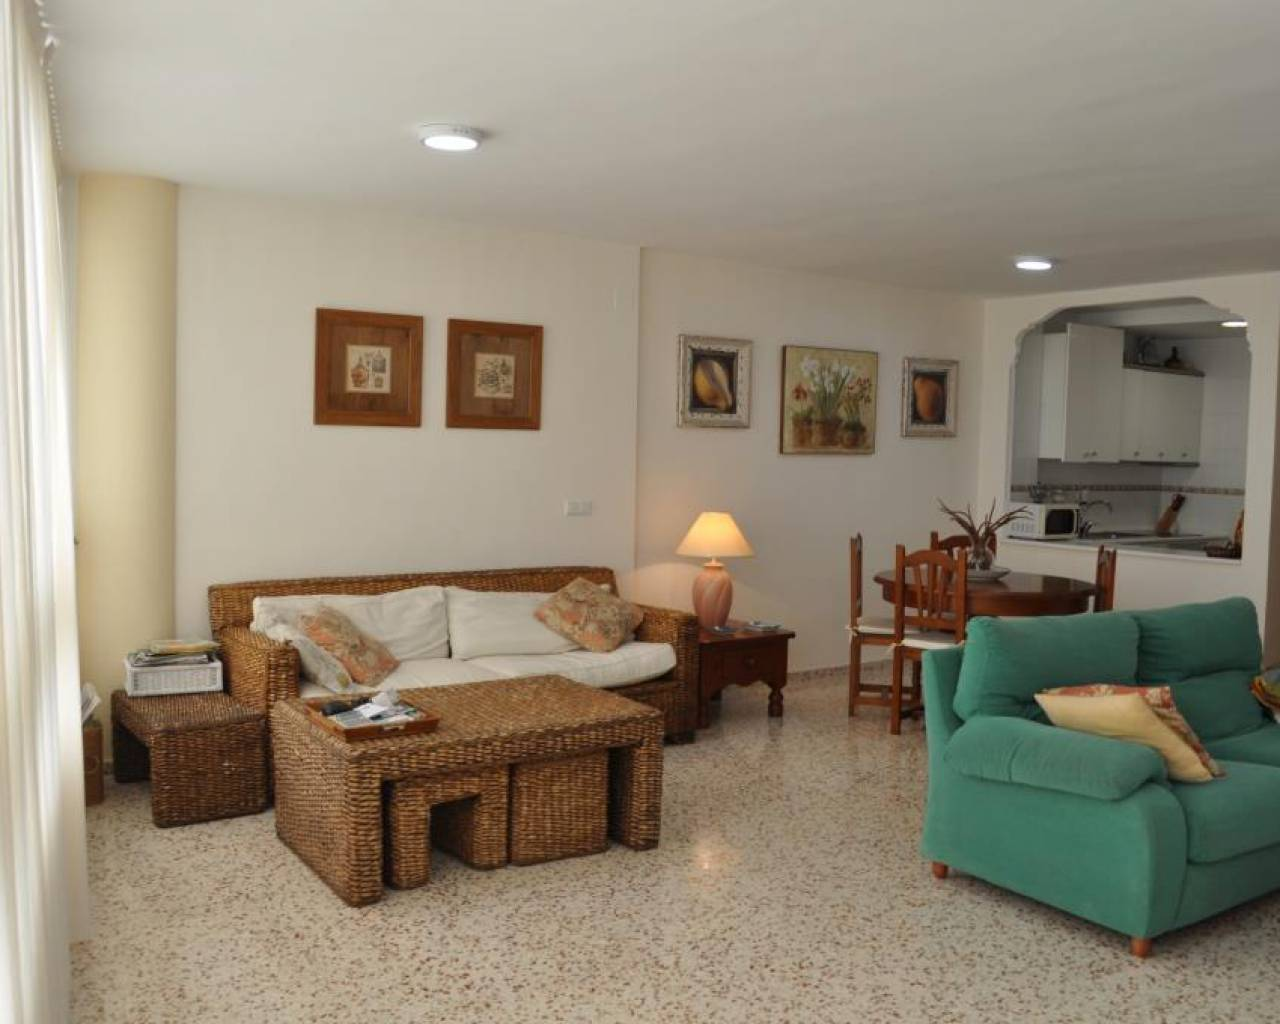 Sale - Apartment - Villajoyosa - Varadero/ Estudiantes beach